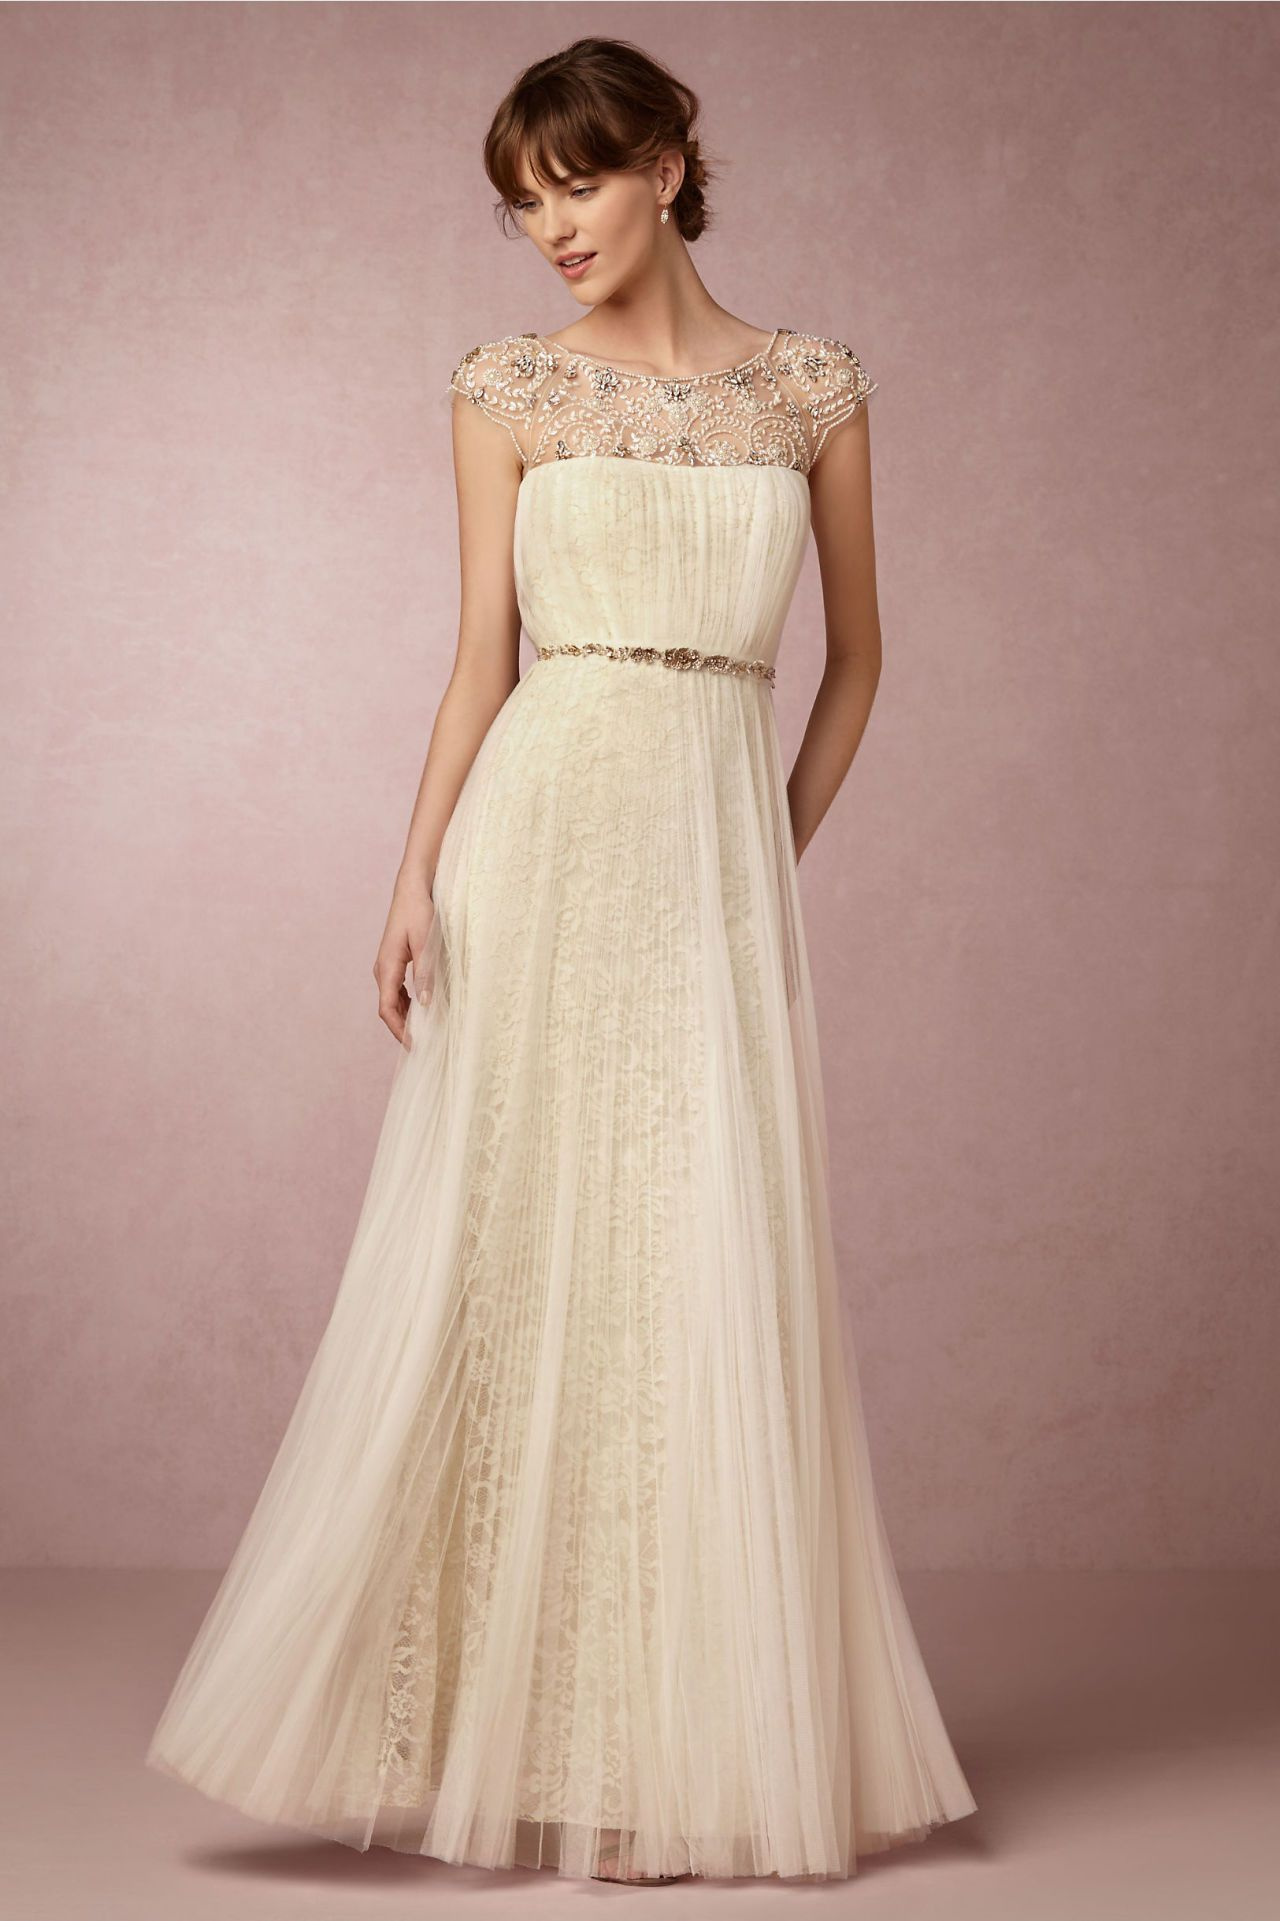 Inexpensive Designer Wedding Marchesa Announced That It Has Teamed Up With Bhldn The